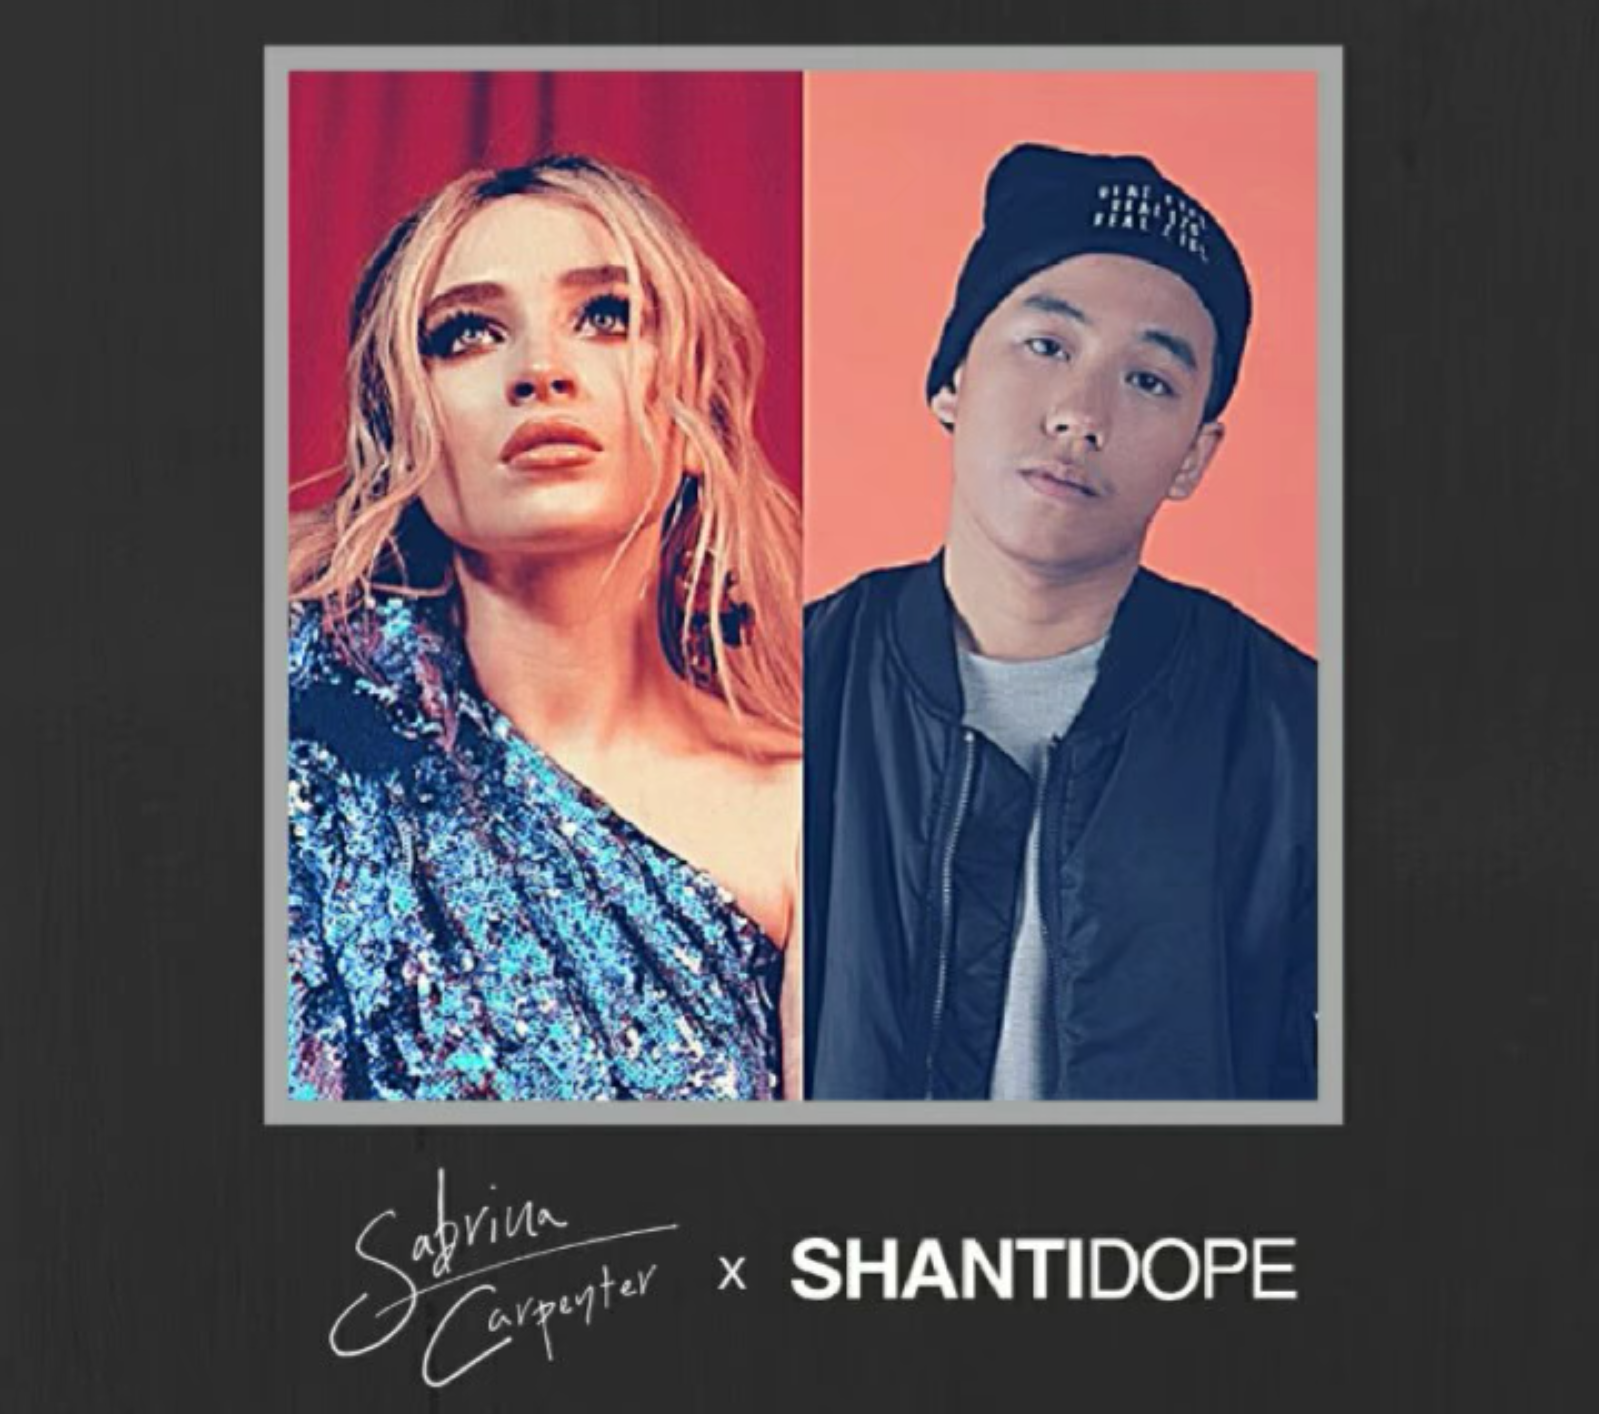 LISTEN: International pop star Sabrina Carpenter collaborates with Shanti Dope on new single 'Almost Love'